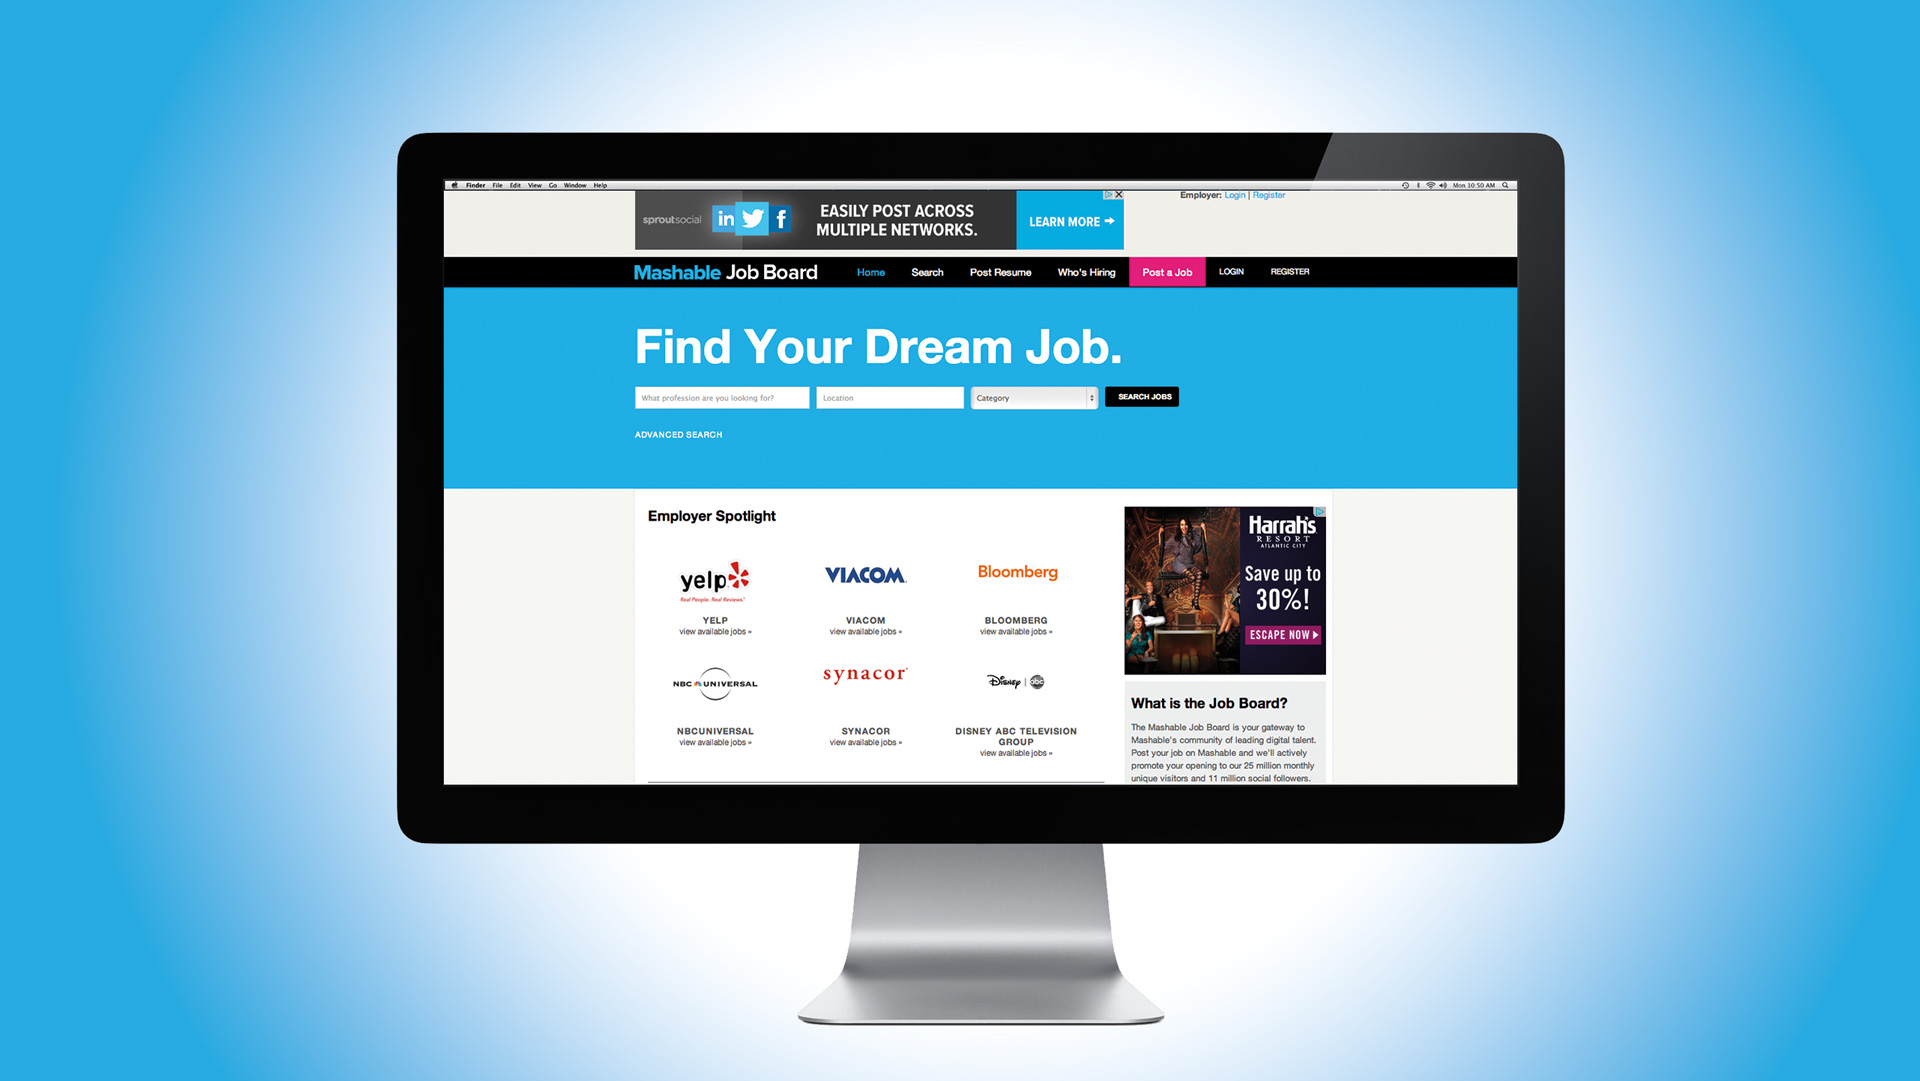 Digital & Tech Jobs | Mashable Job Board